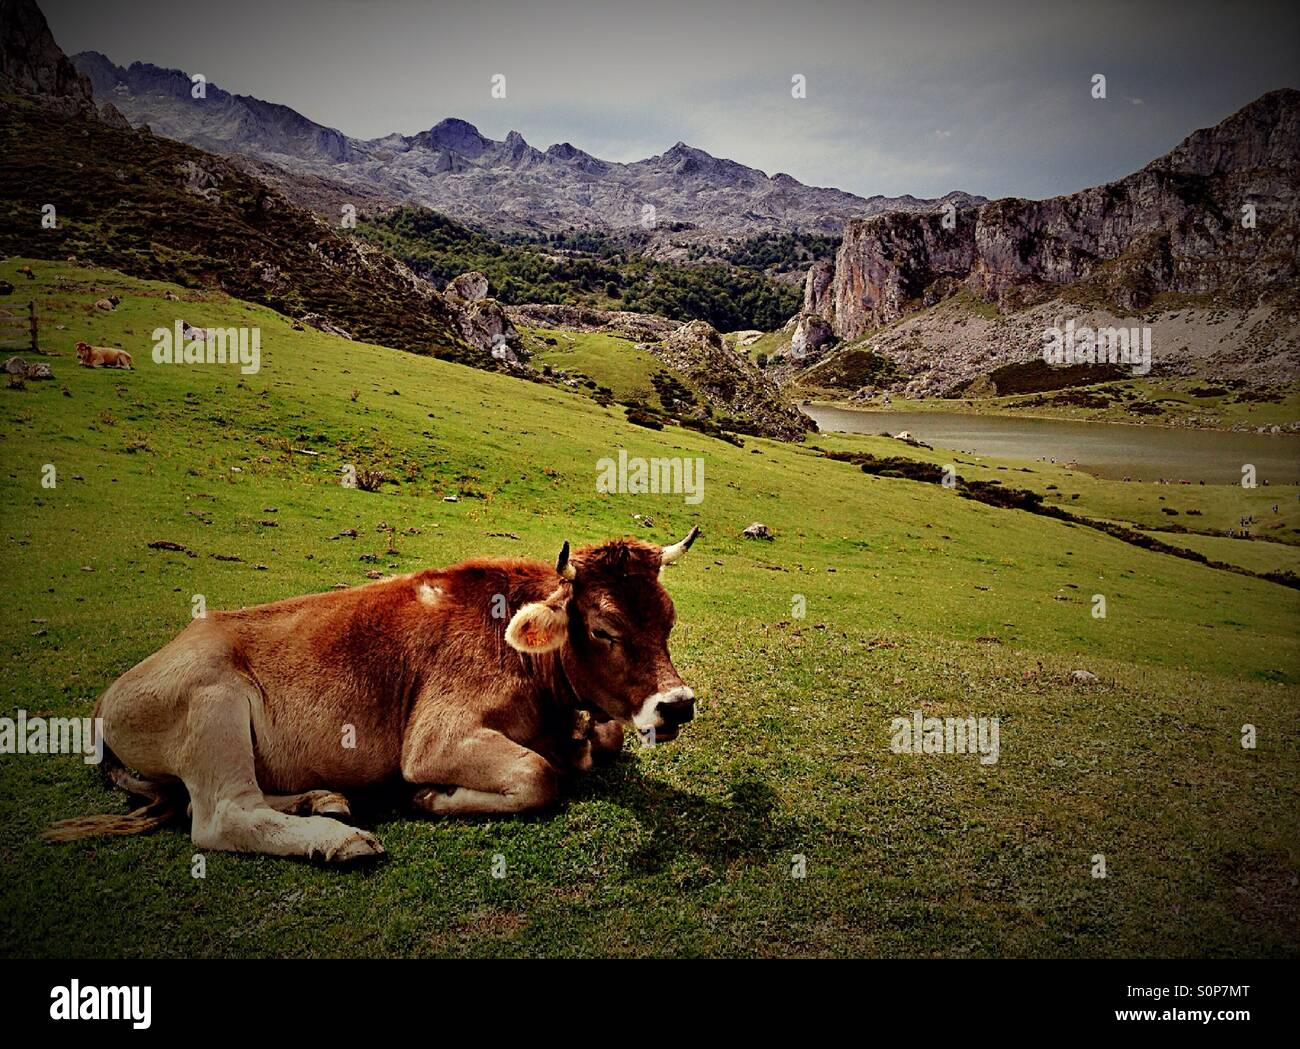 Cow in a pasture at Covadonga Lakes in Picos de Europa, Asturias - Spain - Stock Image